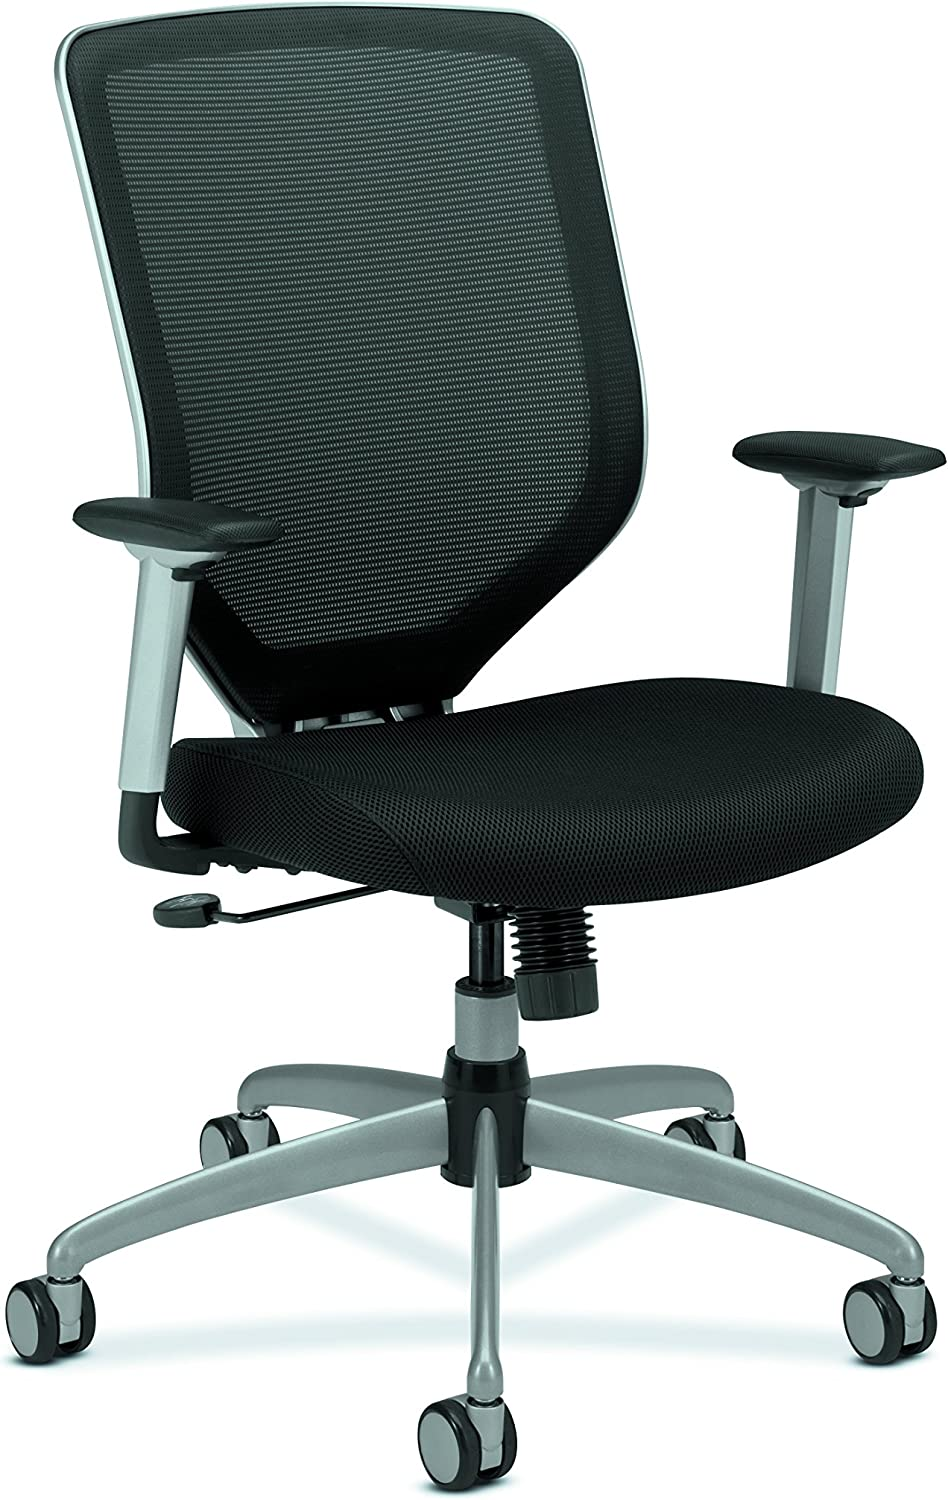 HON Boda High-Back Work Chair- Mesh Computer Chair for Office Desk, Black (HMH01)